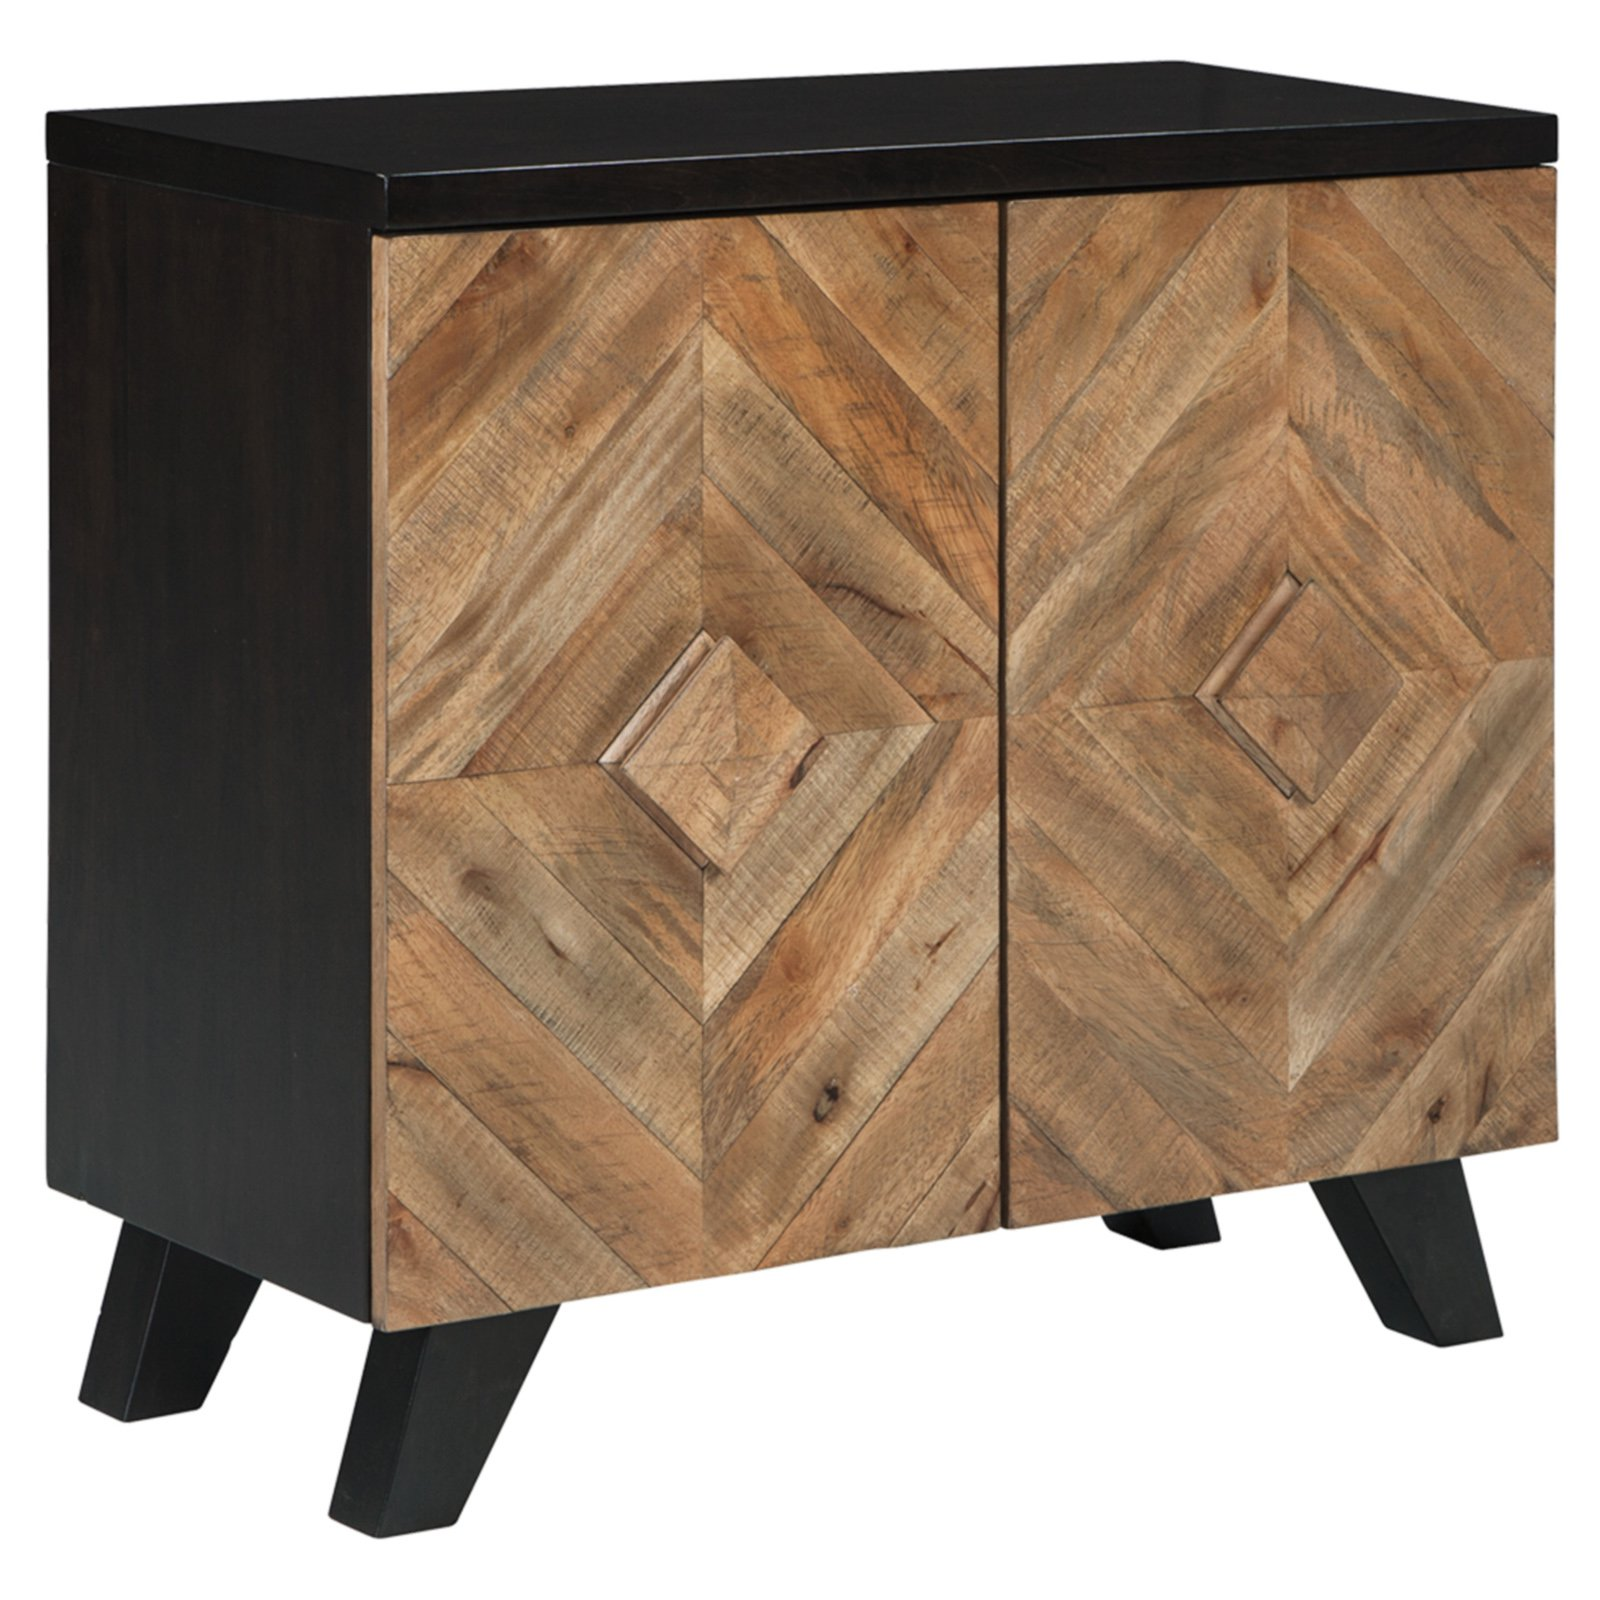 Signature Design by Ashley Robin Ridge 2 Door Accent Cabinet